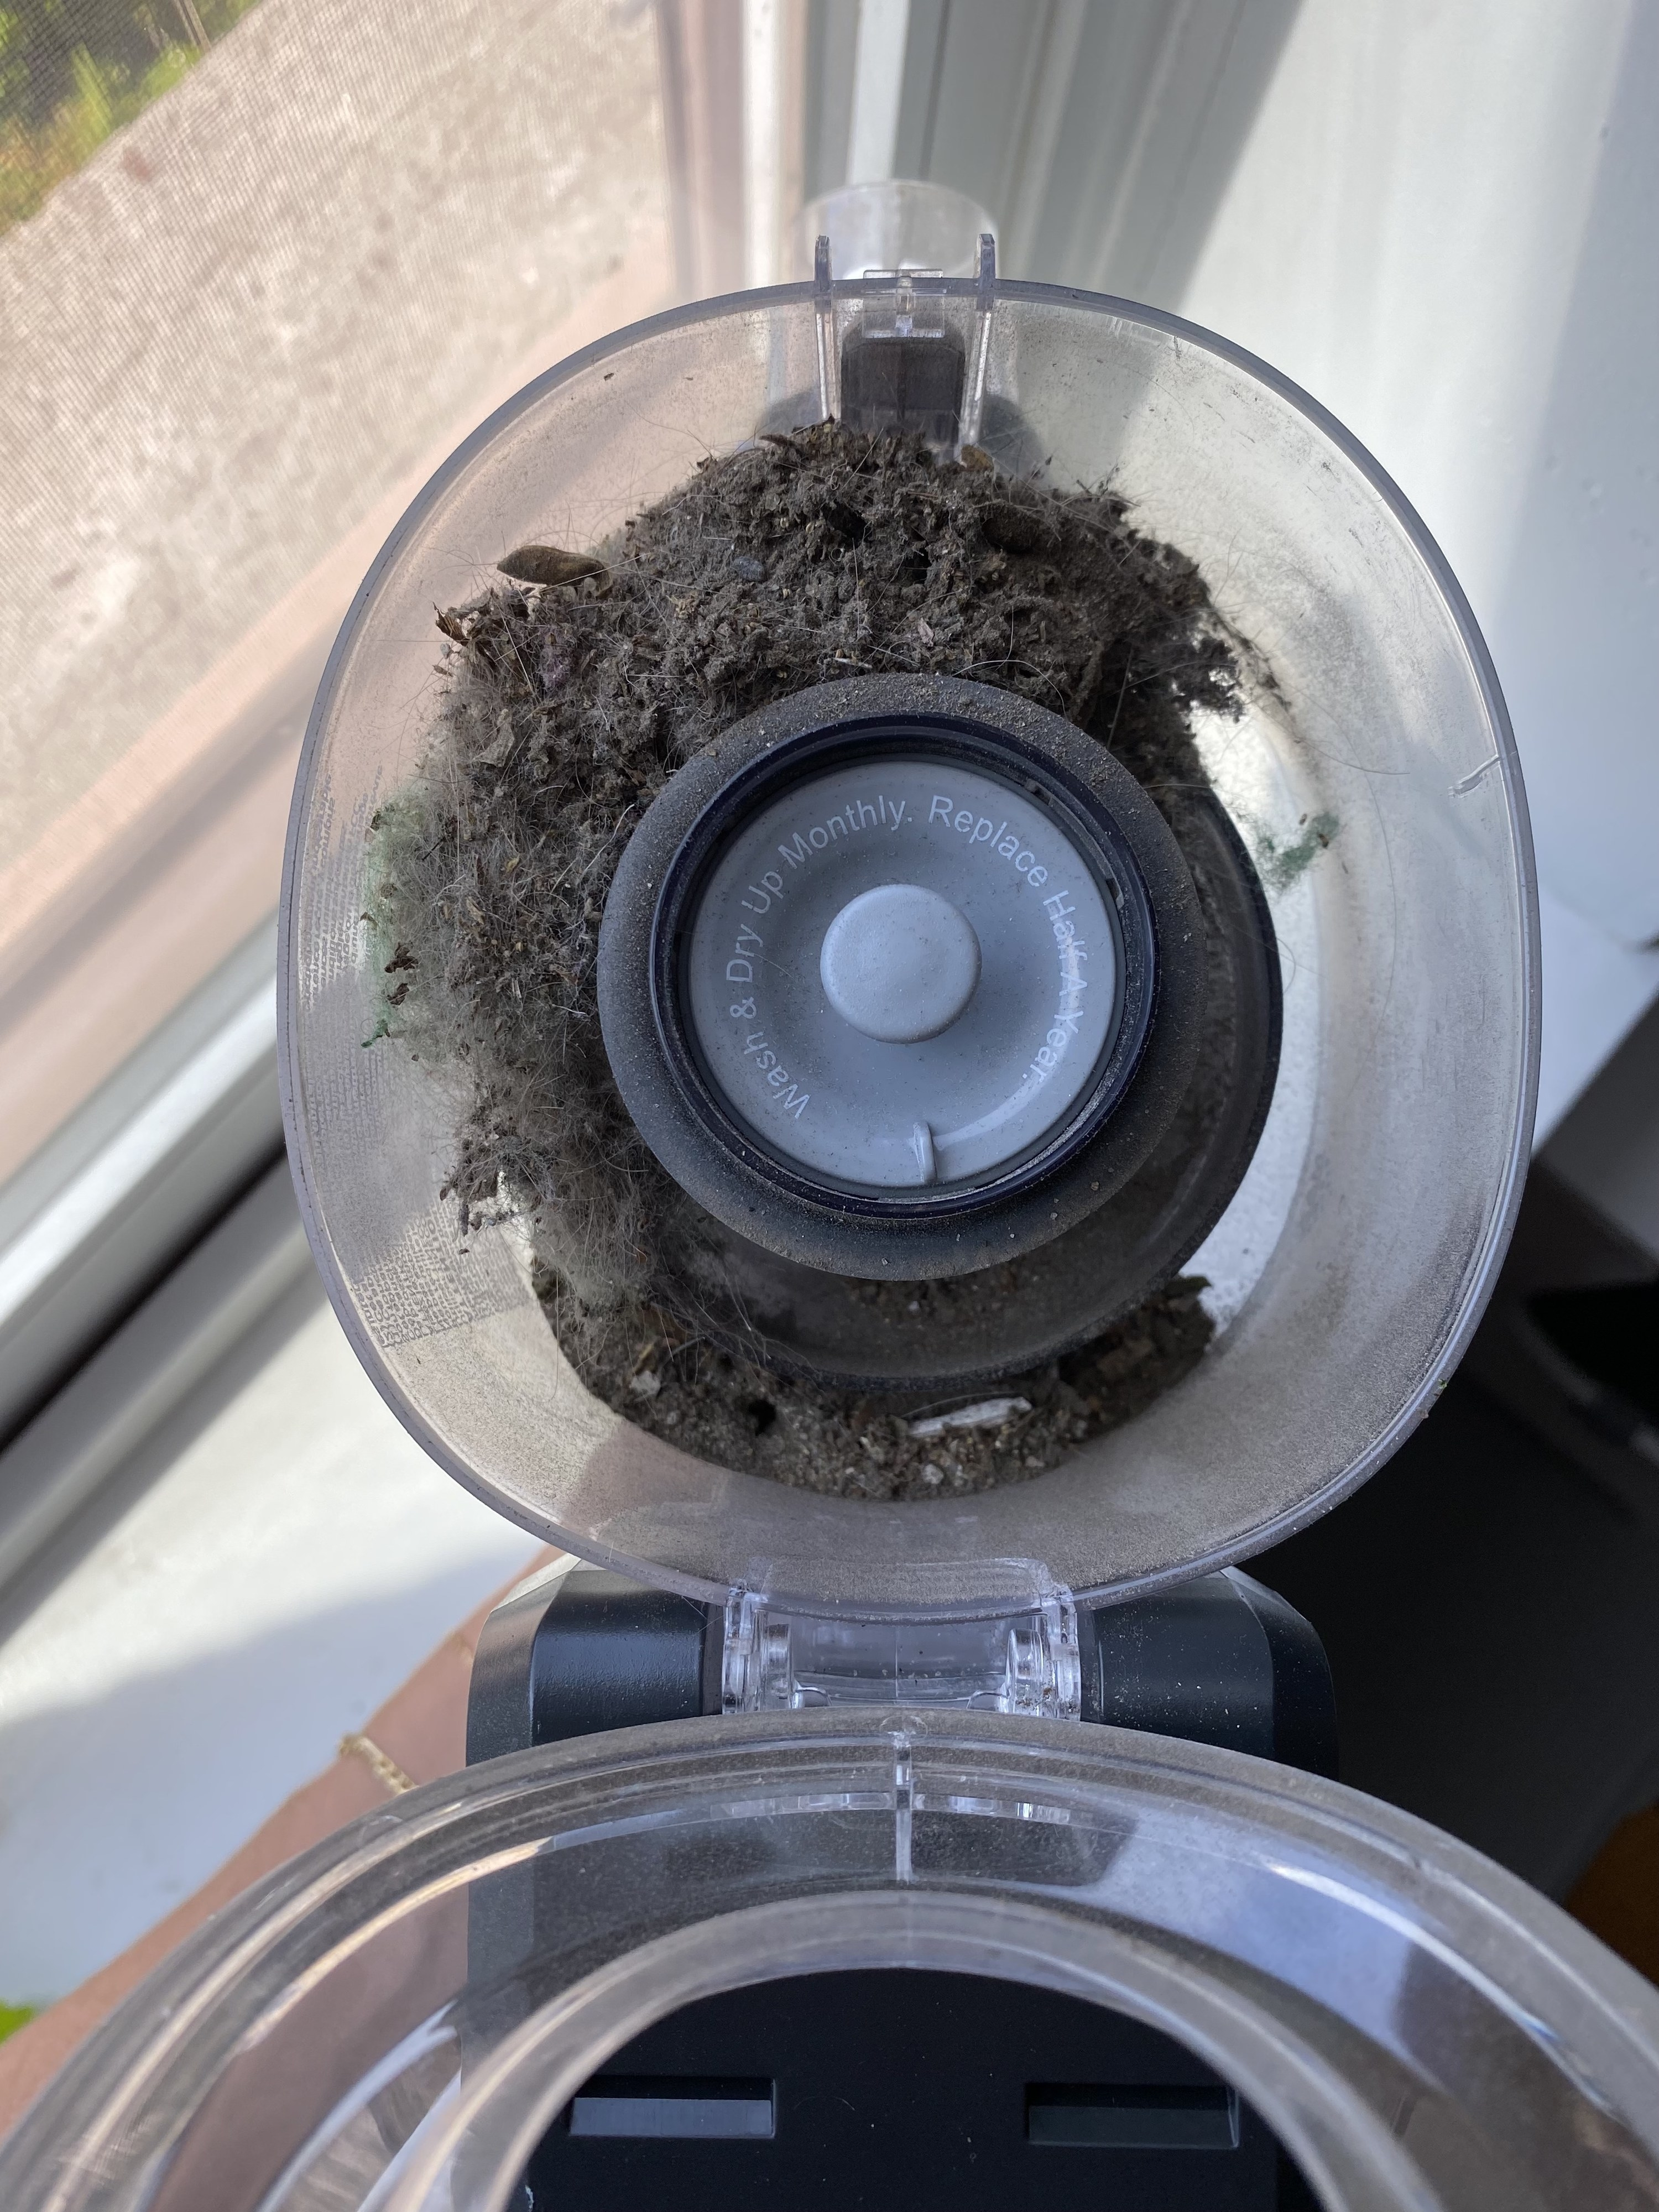 the vacuum canister full of fuzzy grey refuse